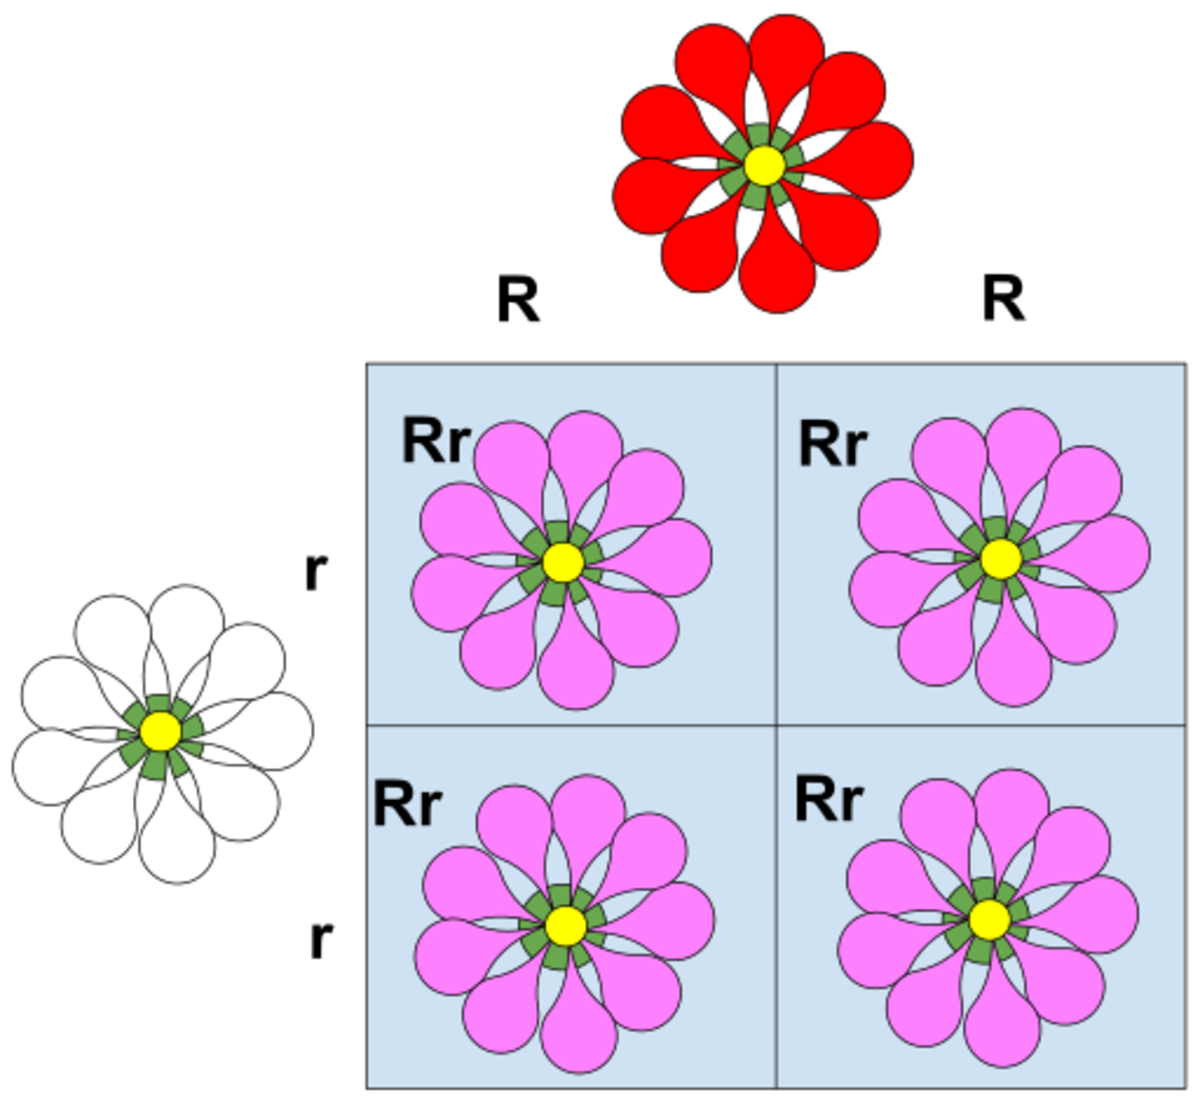 Incomplete Dominance means the traits get mixed.  Red and white make pink, in incomplete dominance.